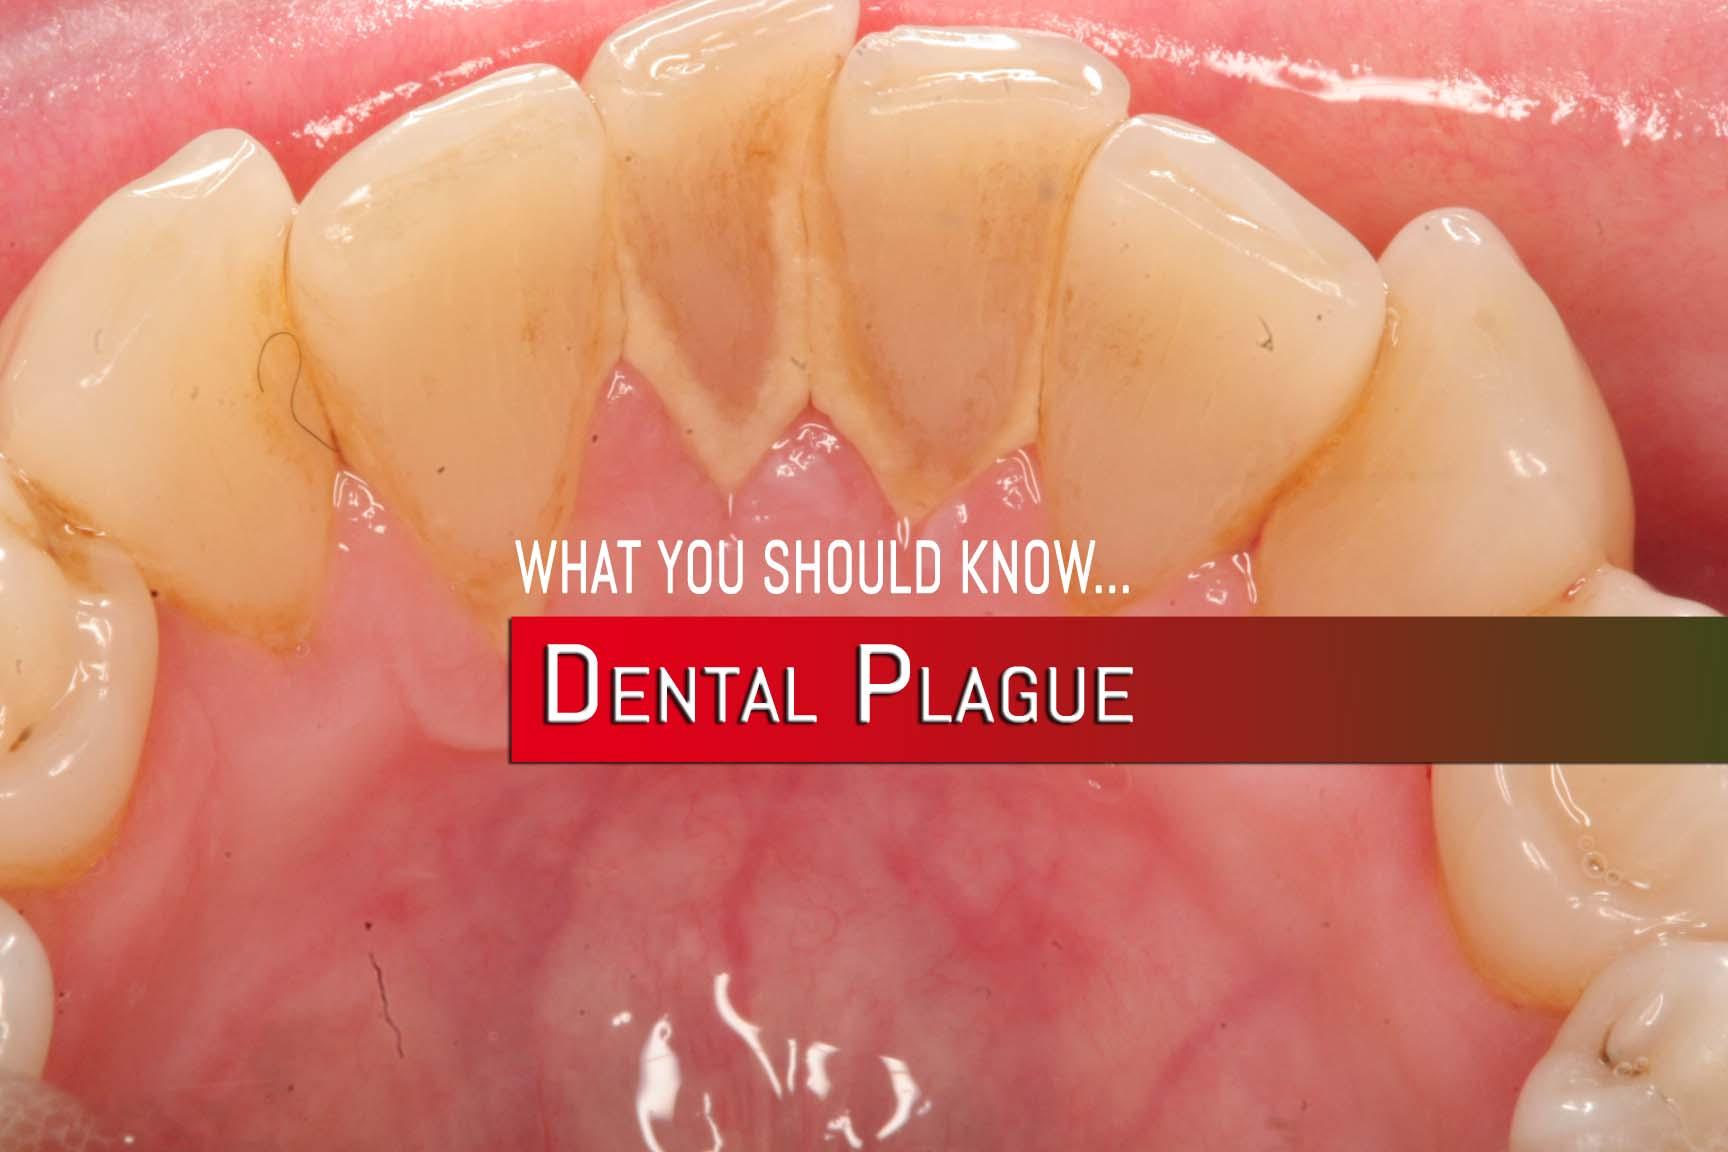 DentalPlague